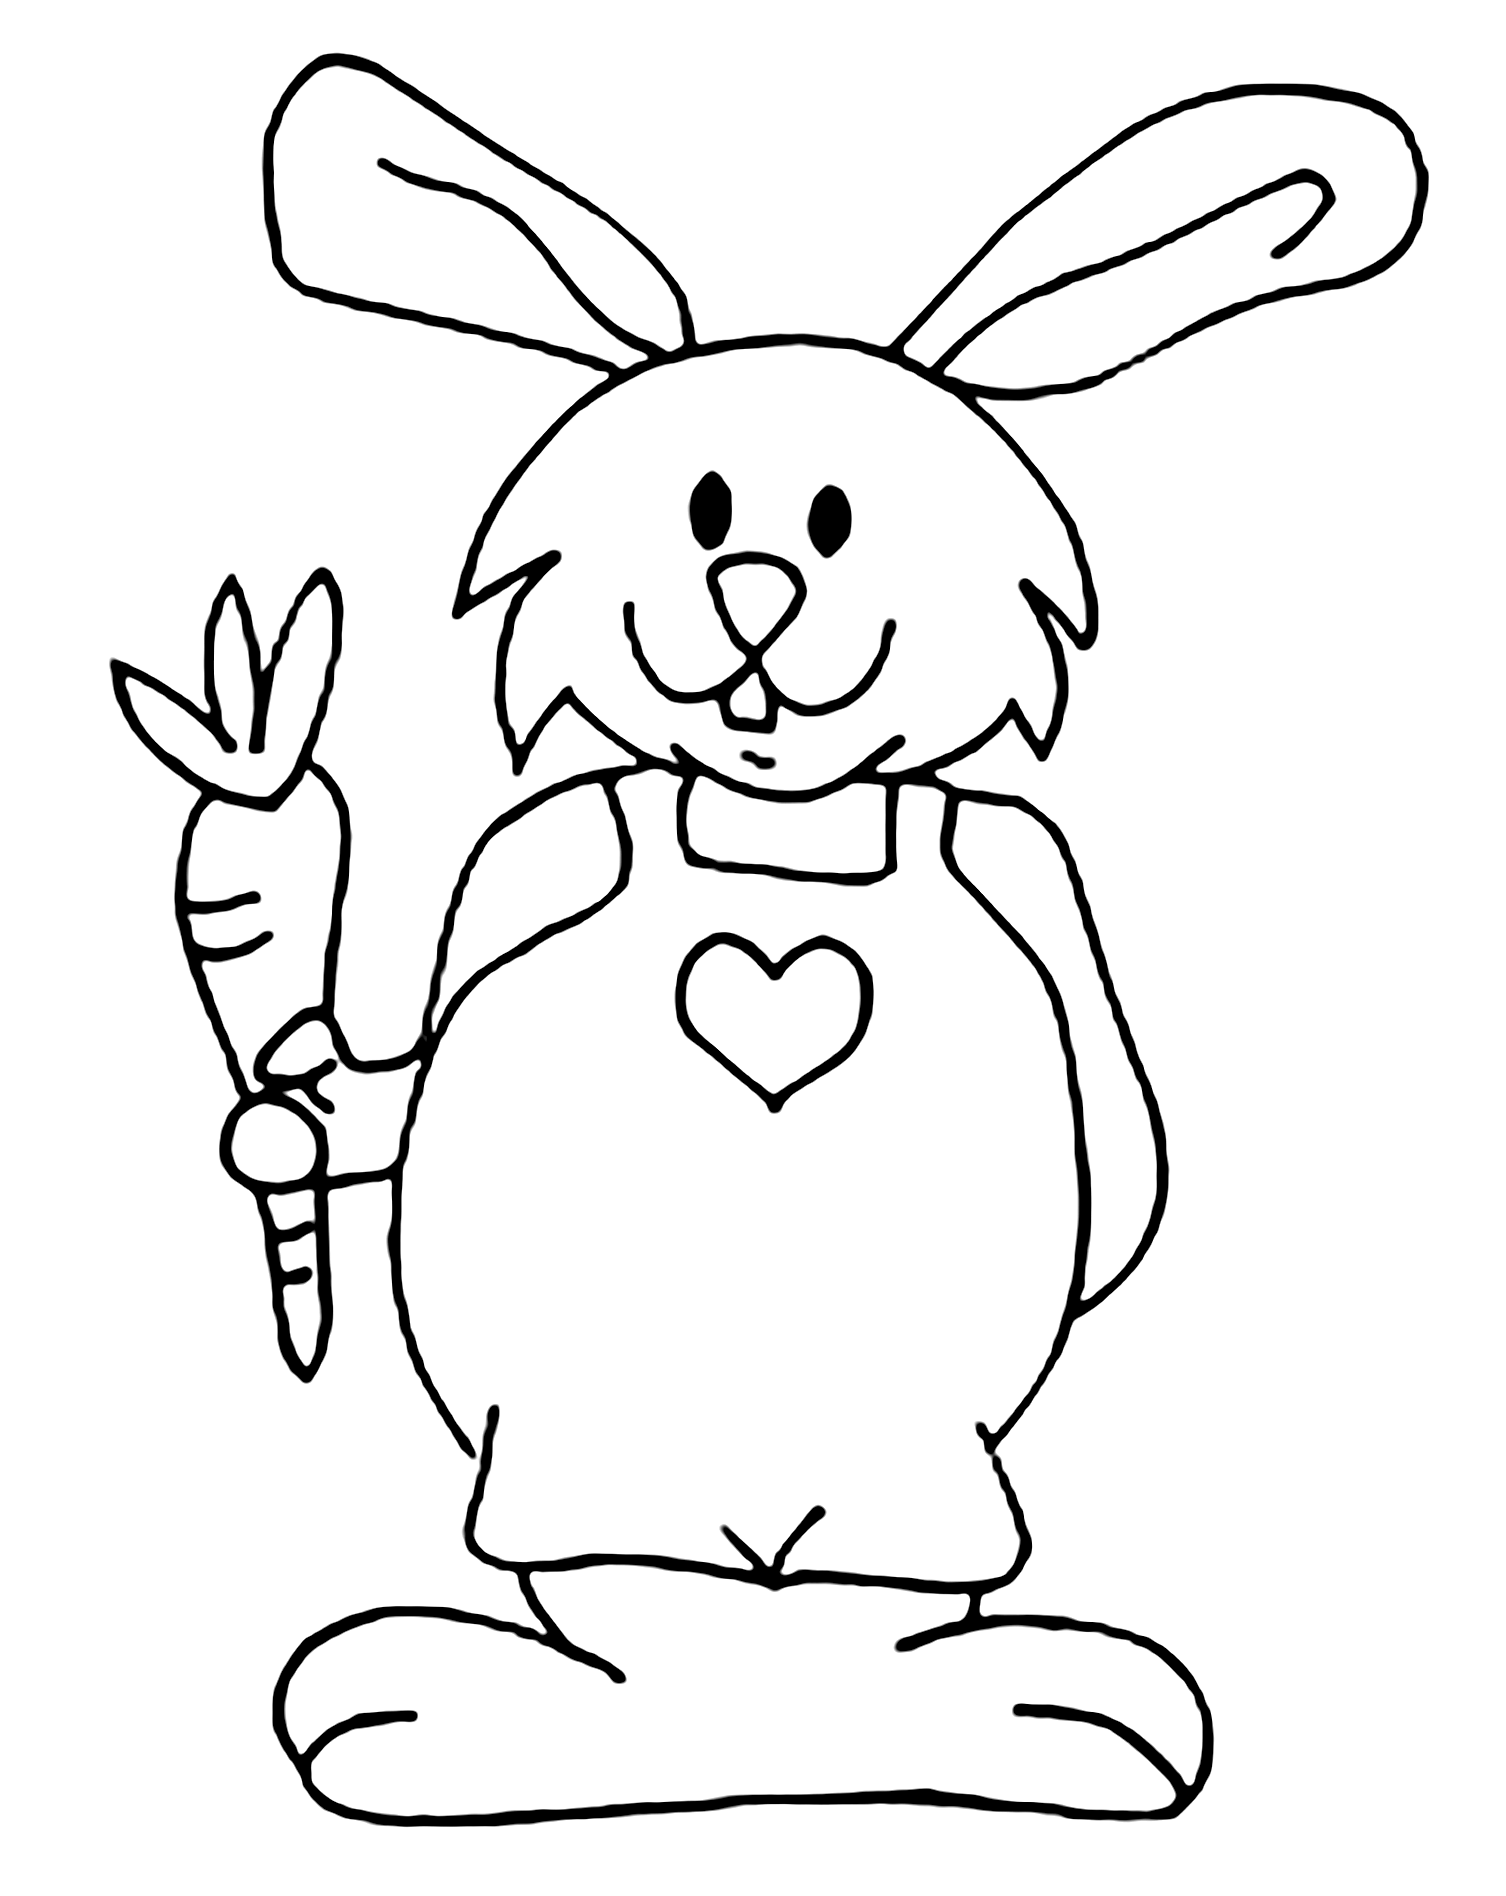 rabbit images for colouring rabbit for children rabbit kids coloring pages rabbit images for colouring